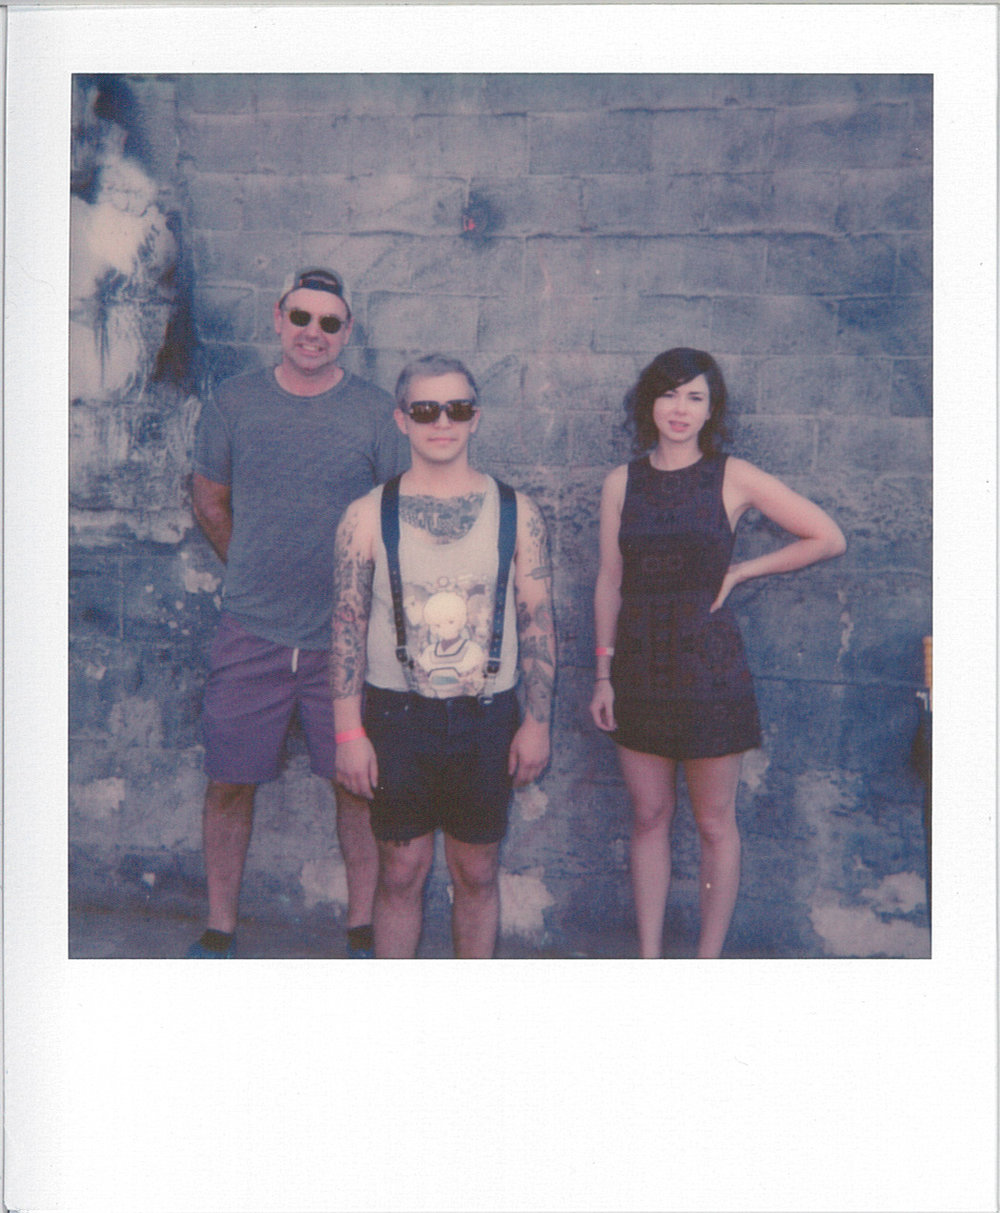 Dusty Brown, polaroid by Adam Murphy @ nonecktie.tumblr.com